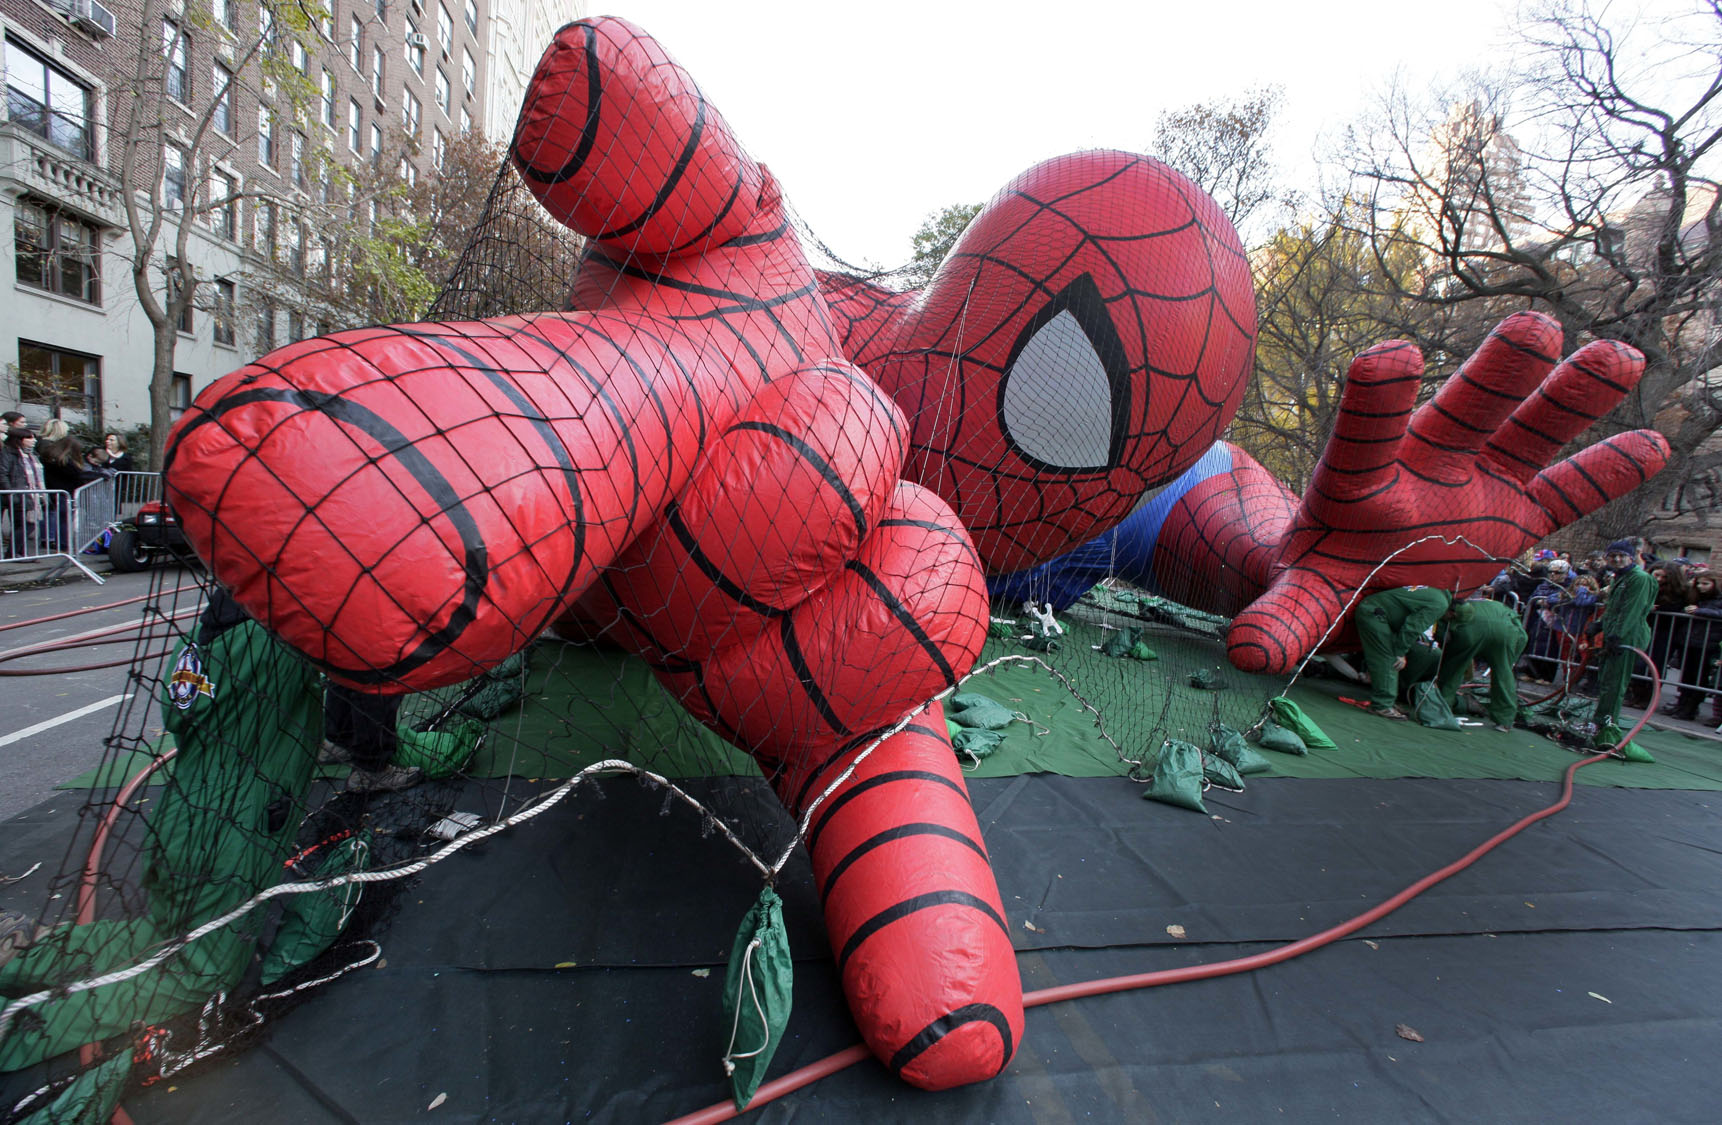 Macy's Thanksgiving Day Parade balloon inflation hours changing this year